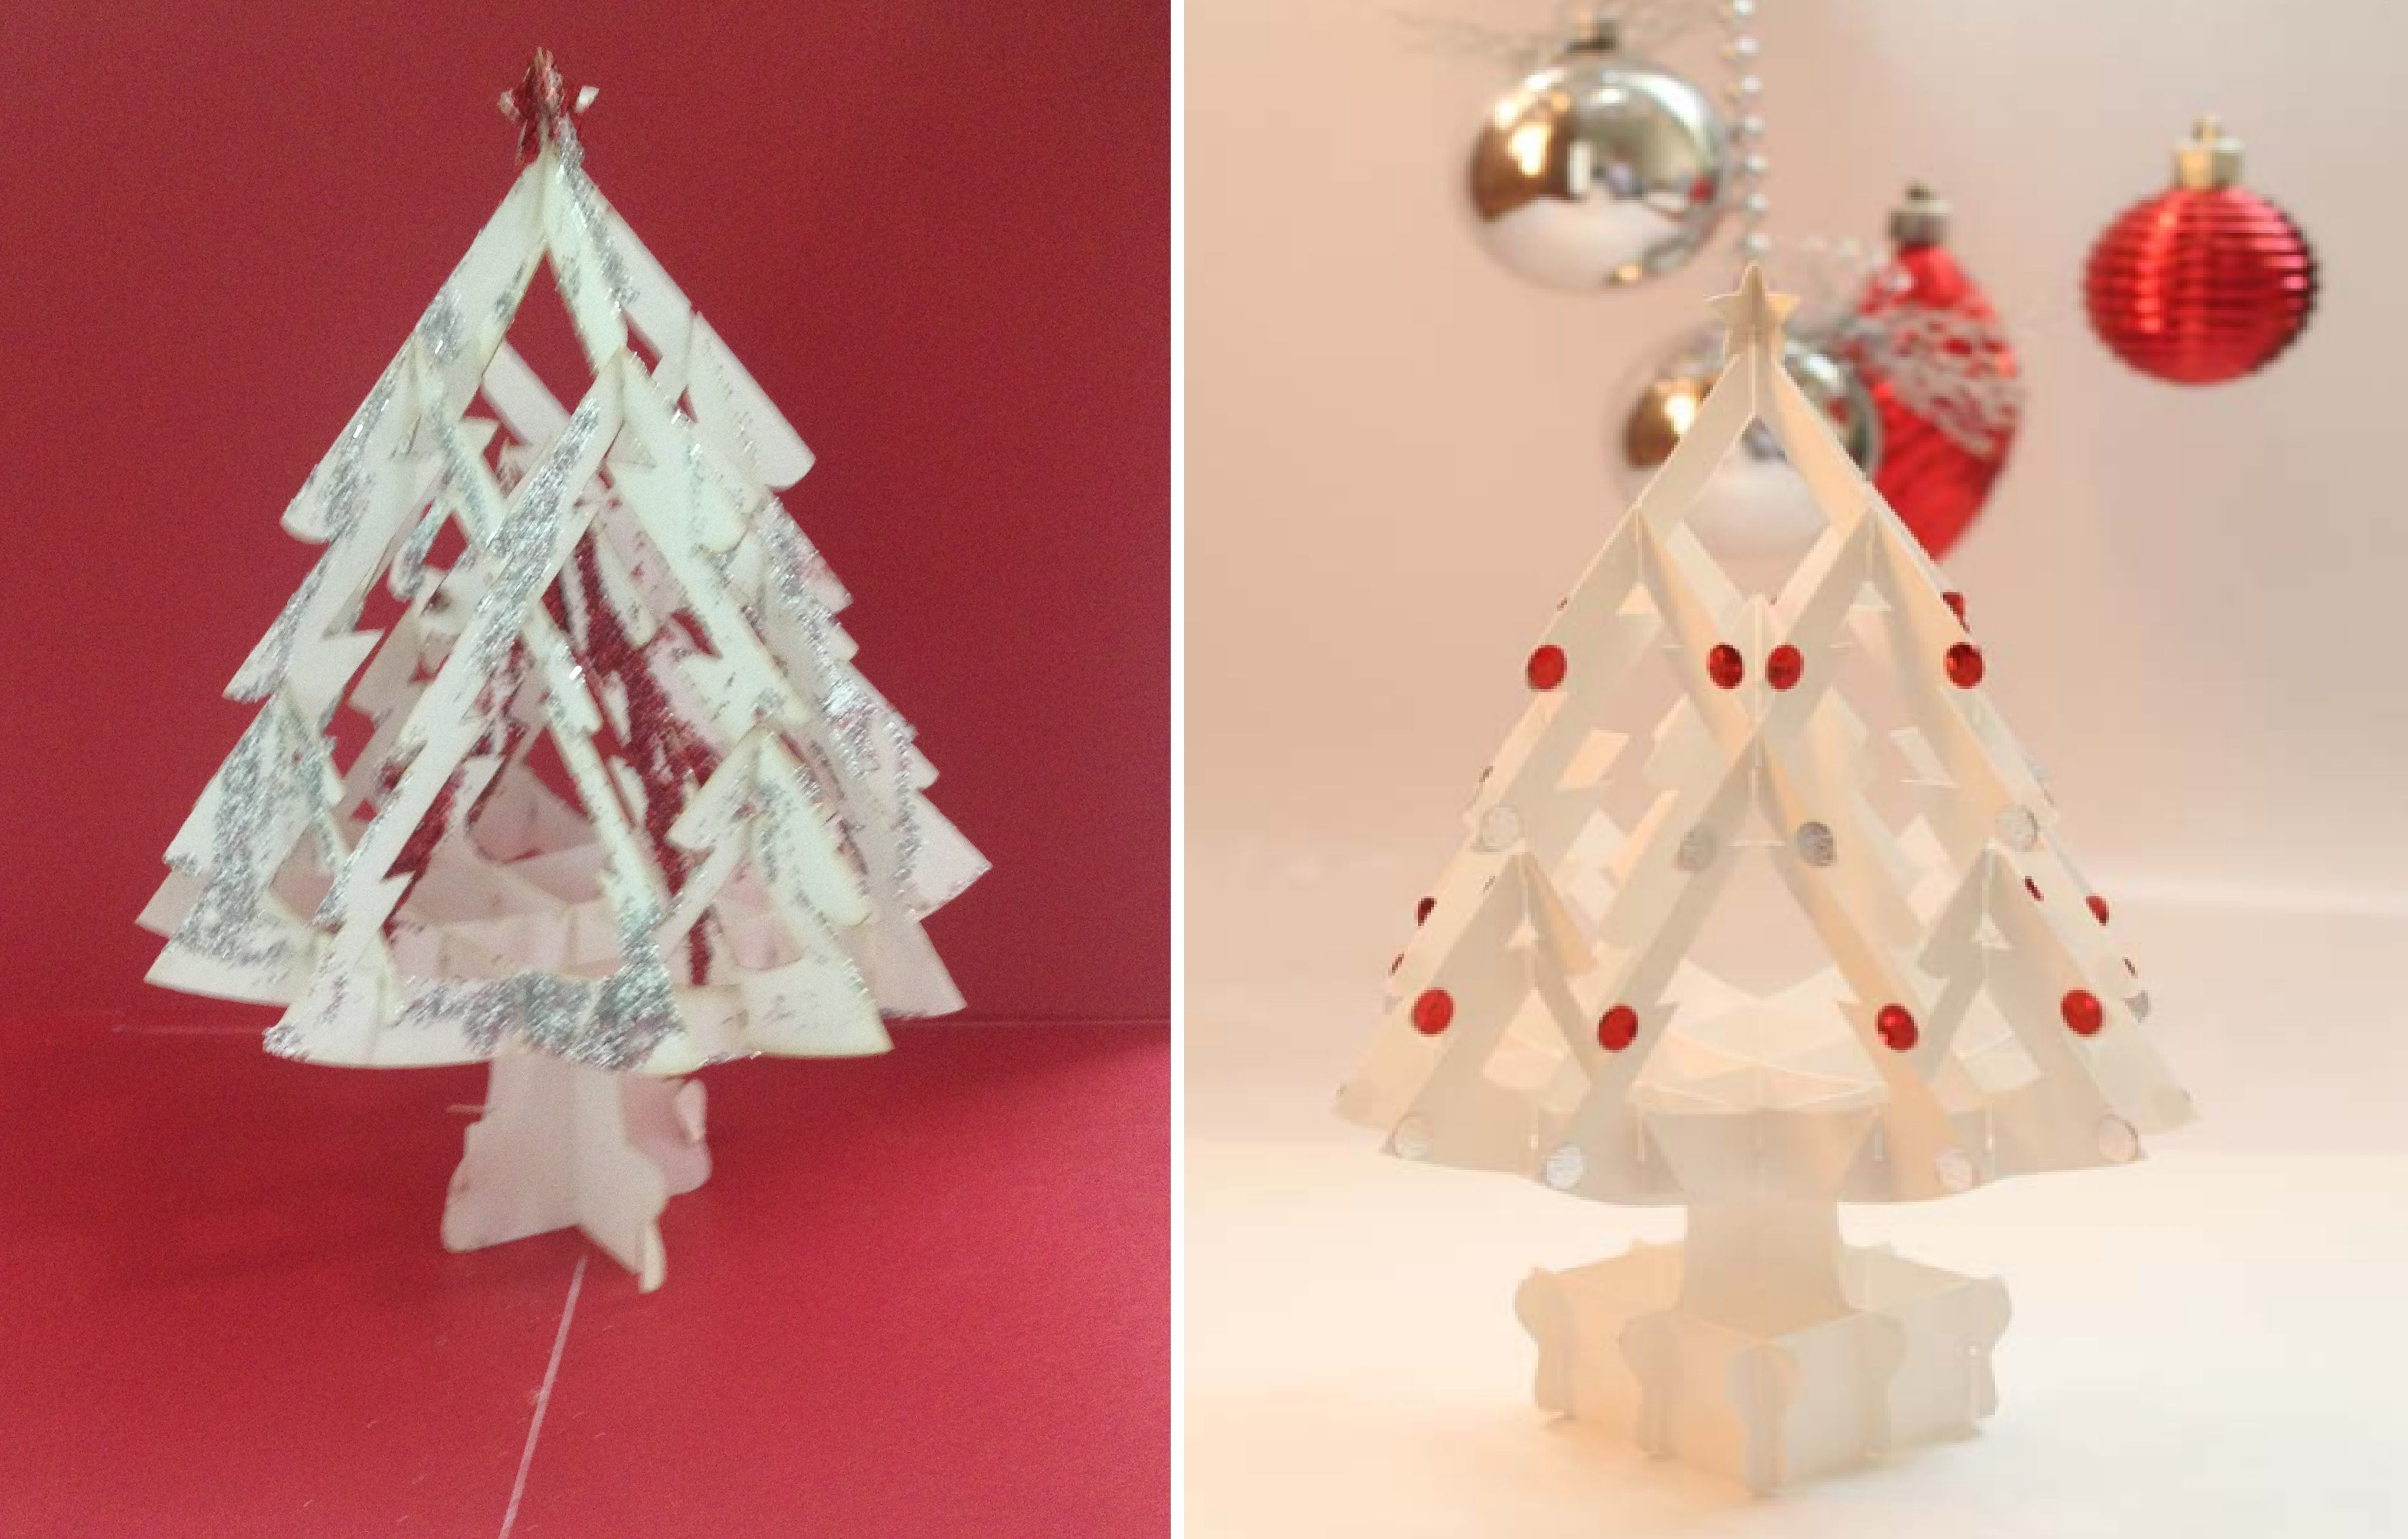 How To Make A 3D Kirigami Paper Christmas Tree - DIY Pop Up Card ...